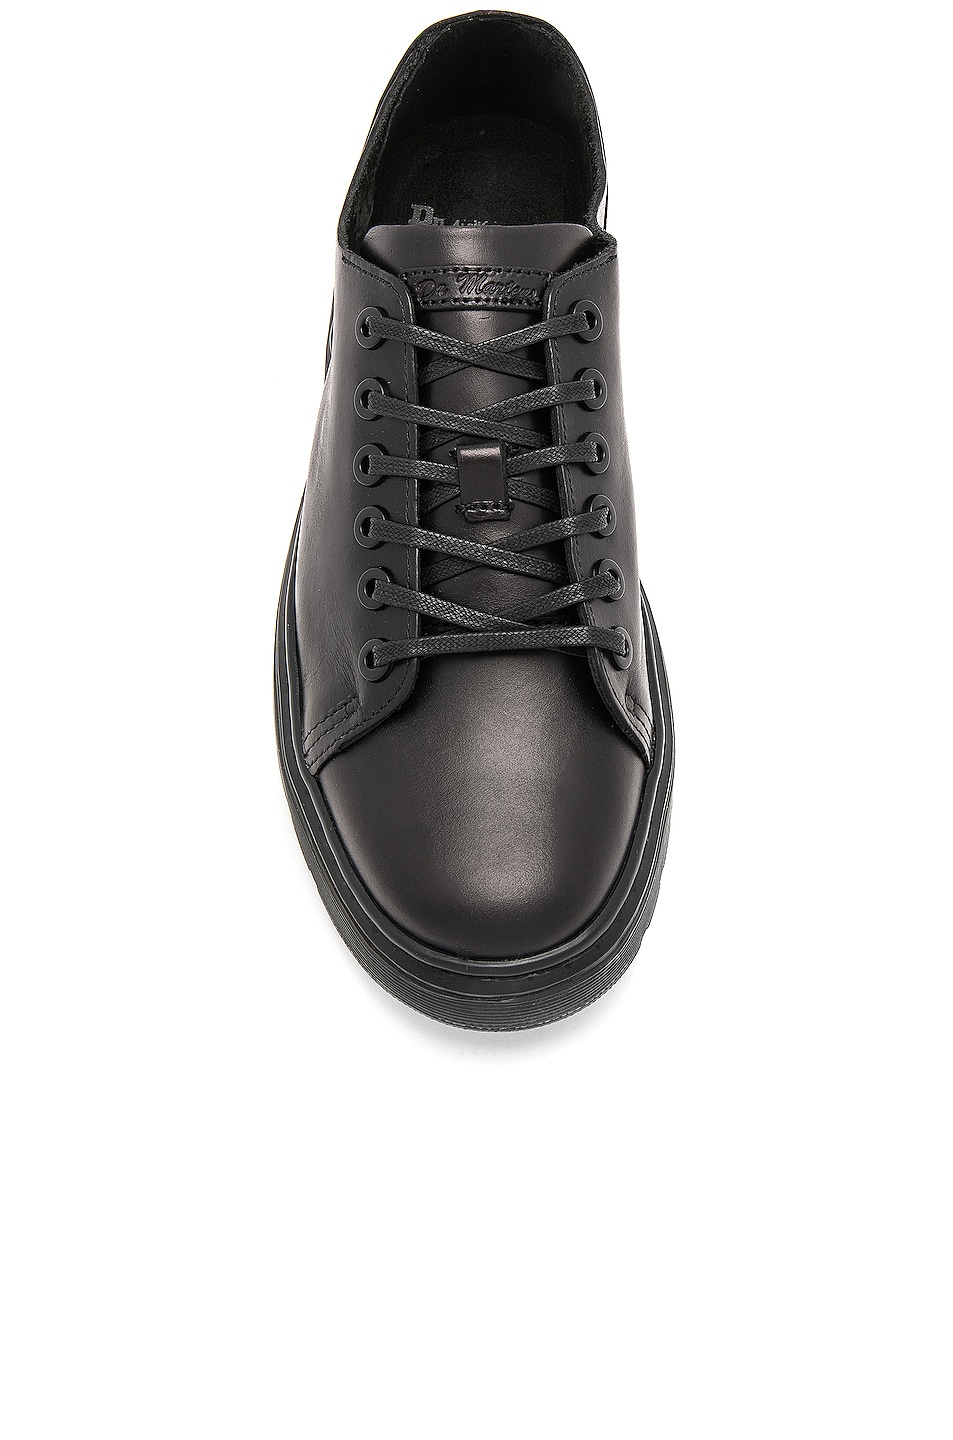 Image 4 of Dr. Martens Dante 6 Eye Leather Shoes in Black